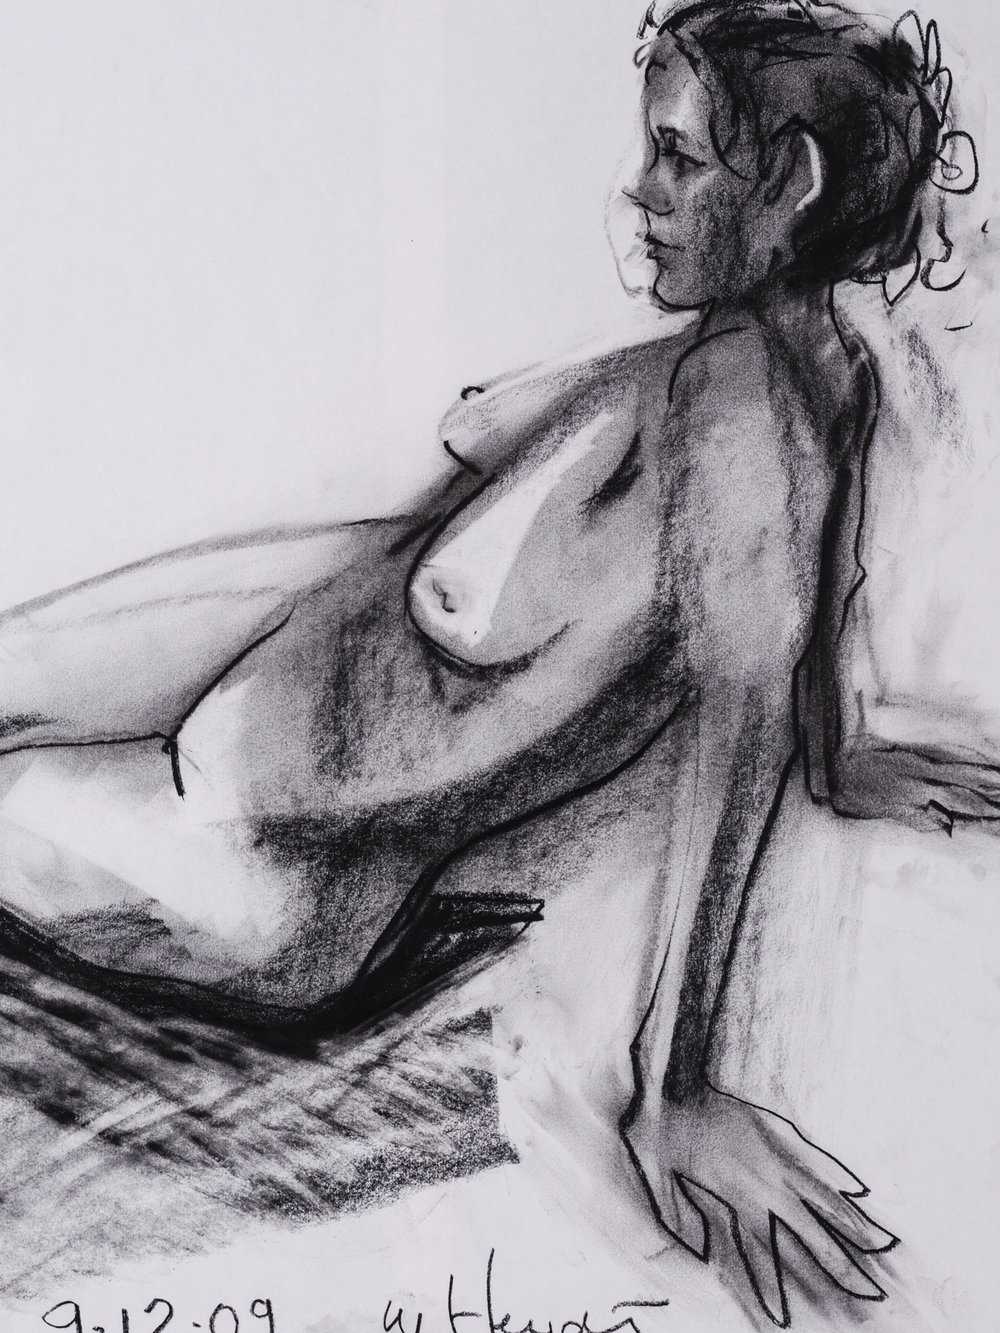 FigureDrawing-wHEYDT-29.jpg